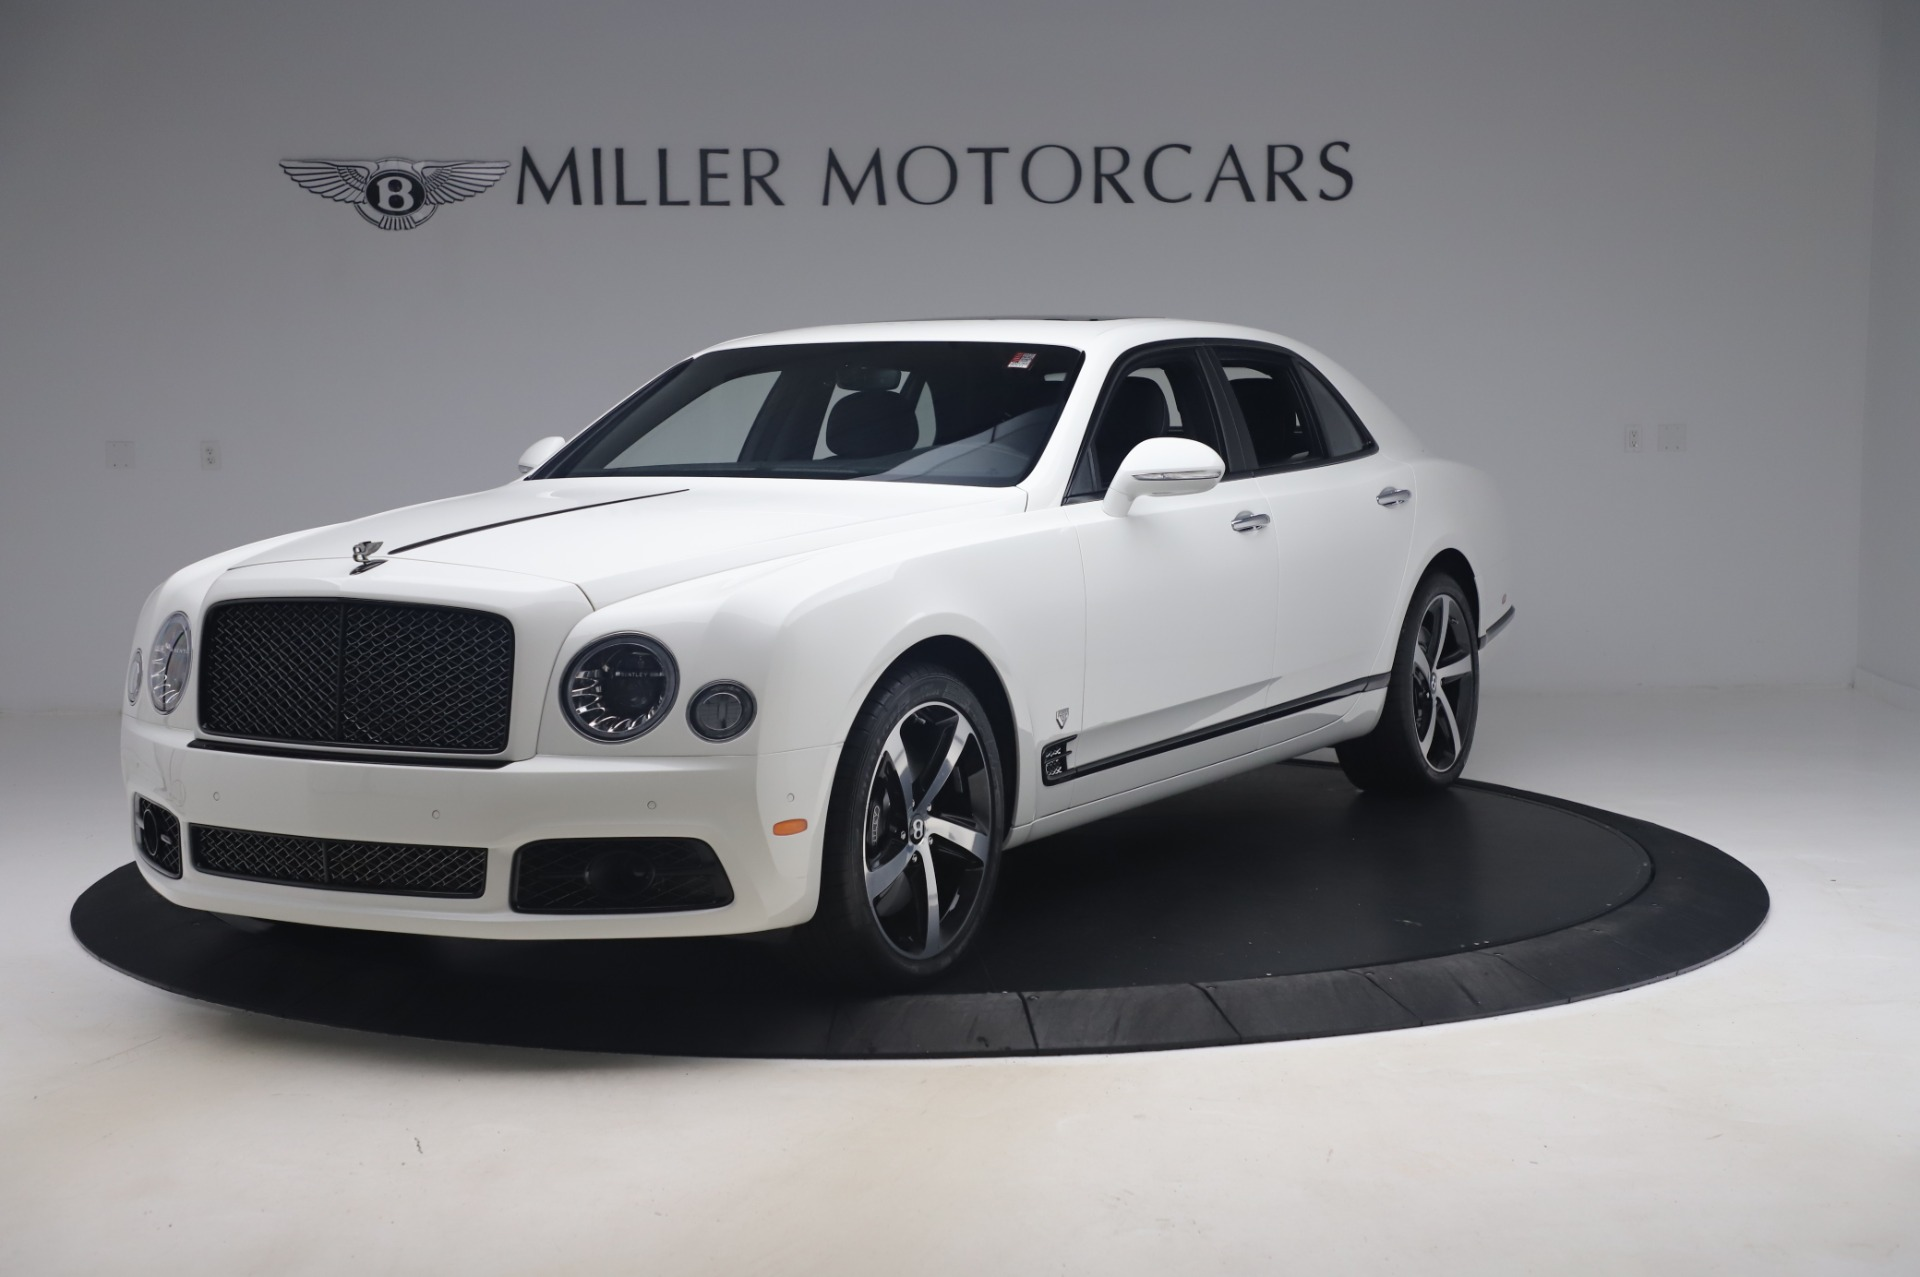 New 2020 Bentley Mulsanne 6.75 Edition by Mulliner for sale $423,065 at Rolls-Royce Motor Cars Greenwich in Greenwich CT 06830 1